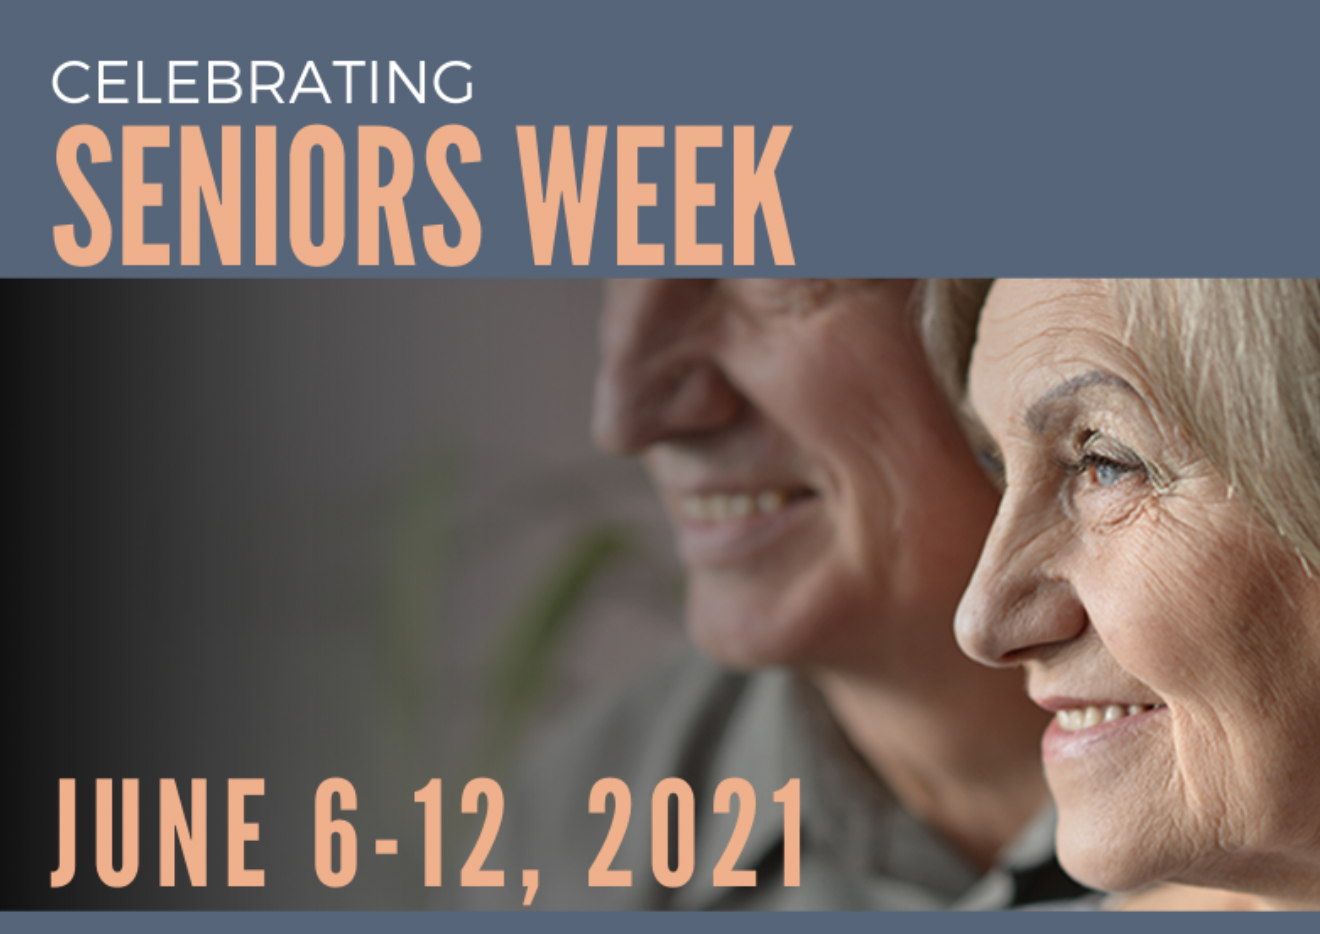 Take a bow BC Seniors … this is your week